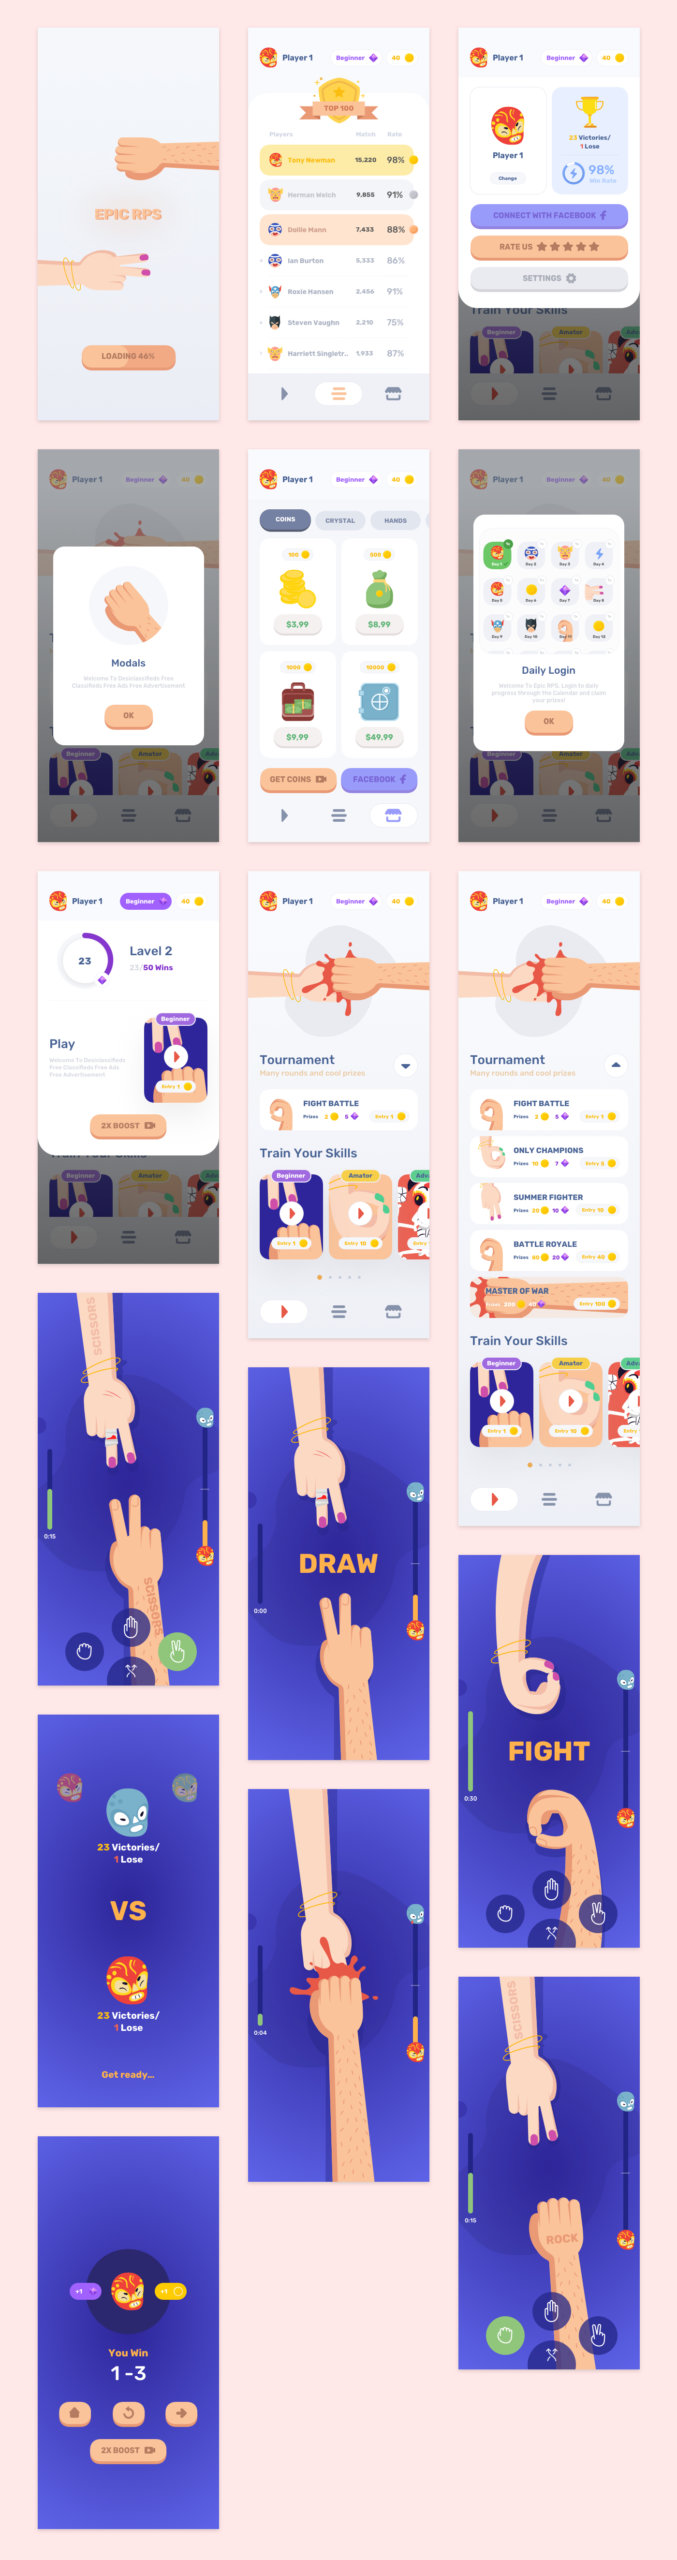 Epic Mobile Game UI Kit for Sketch from UIGarage